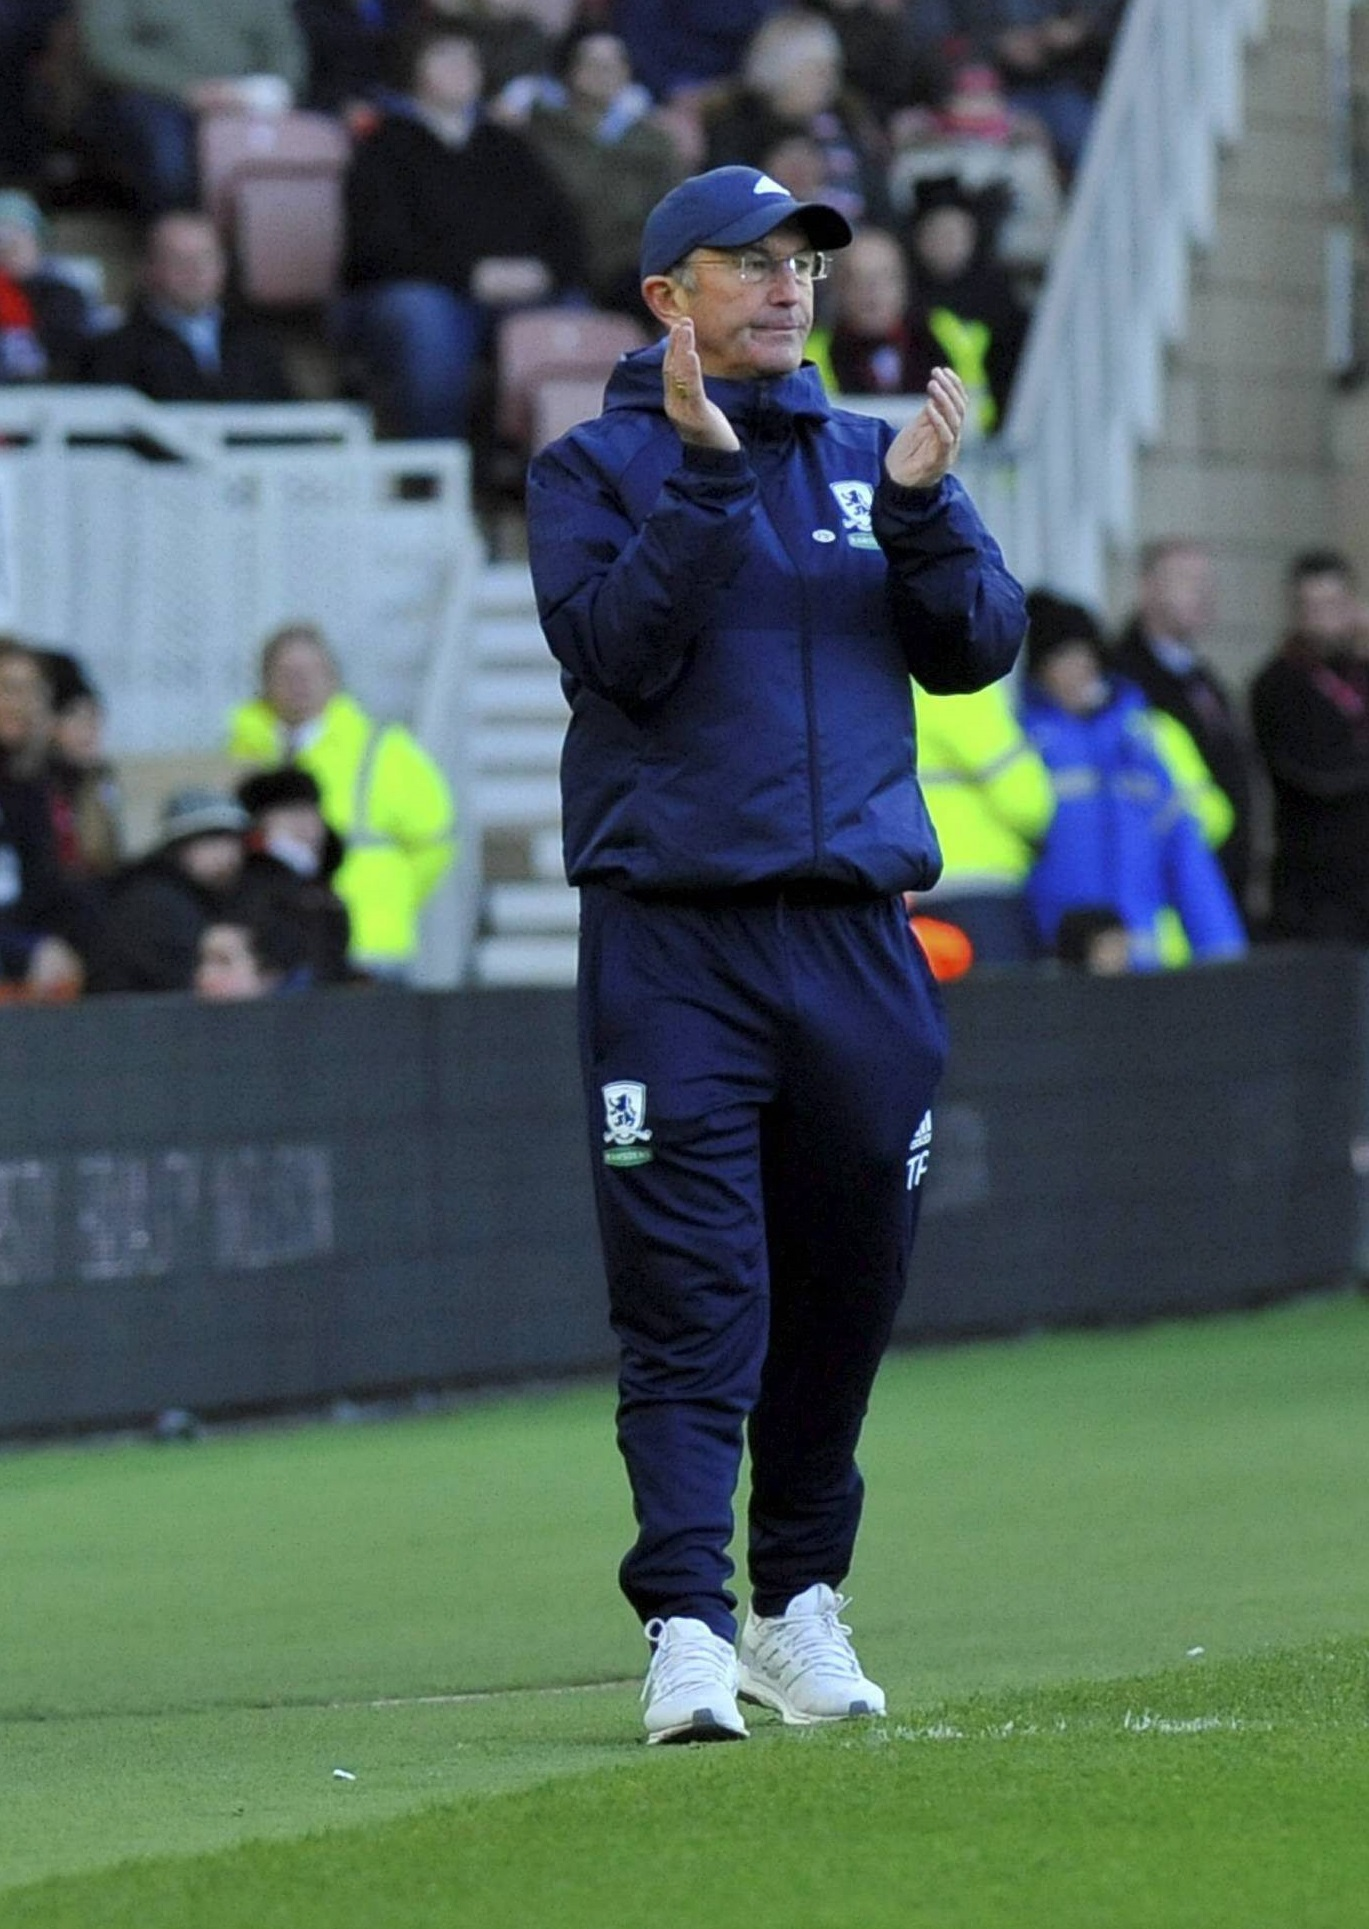 MIDDLESBROUGH: Tony Pulis frustrated by match deciding penalty decisions and wasted chances after Fulham defeat